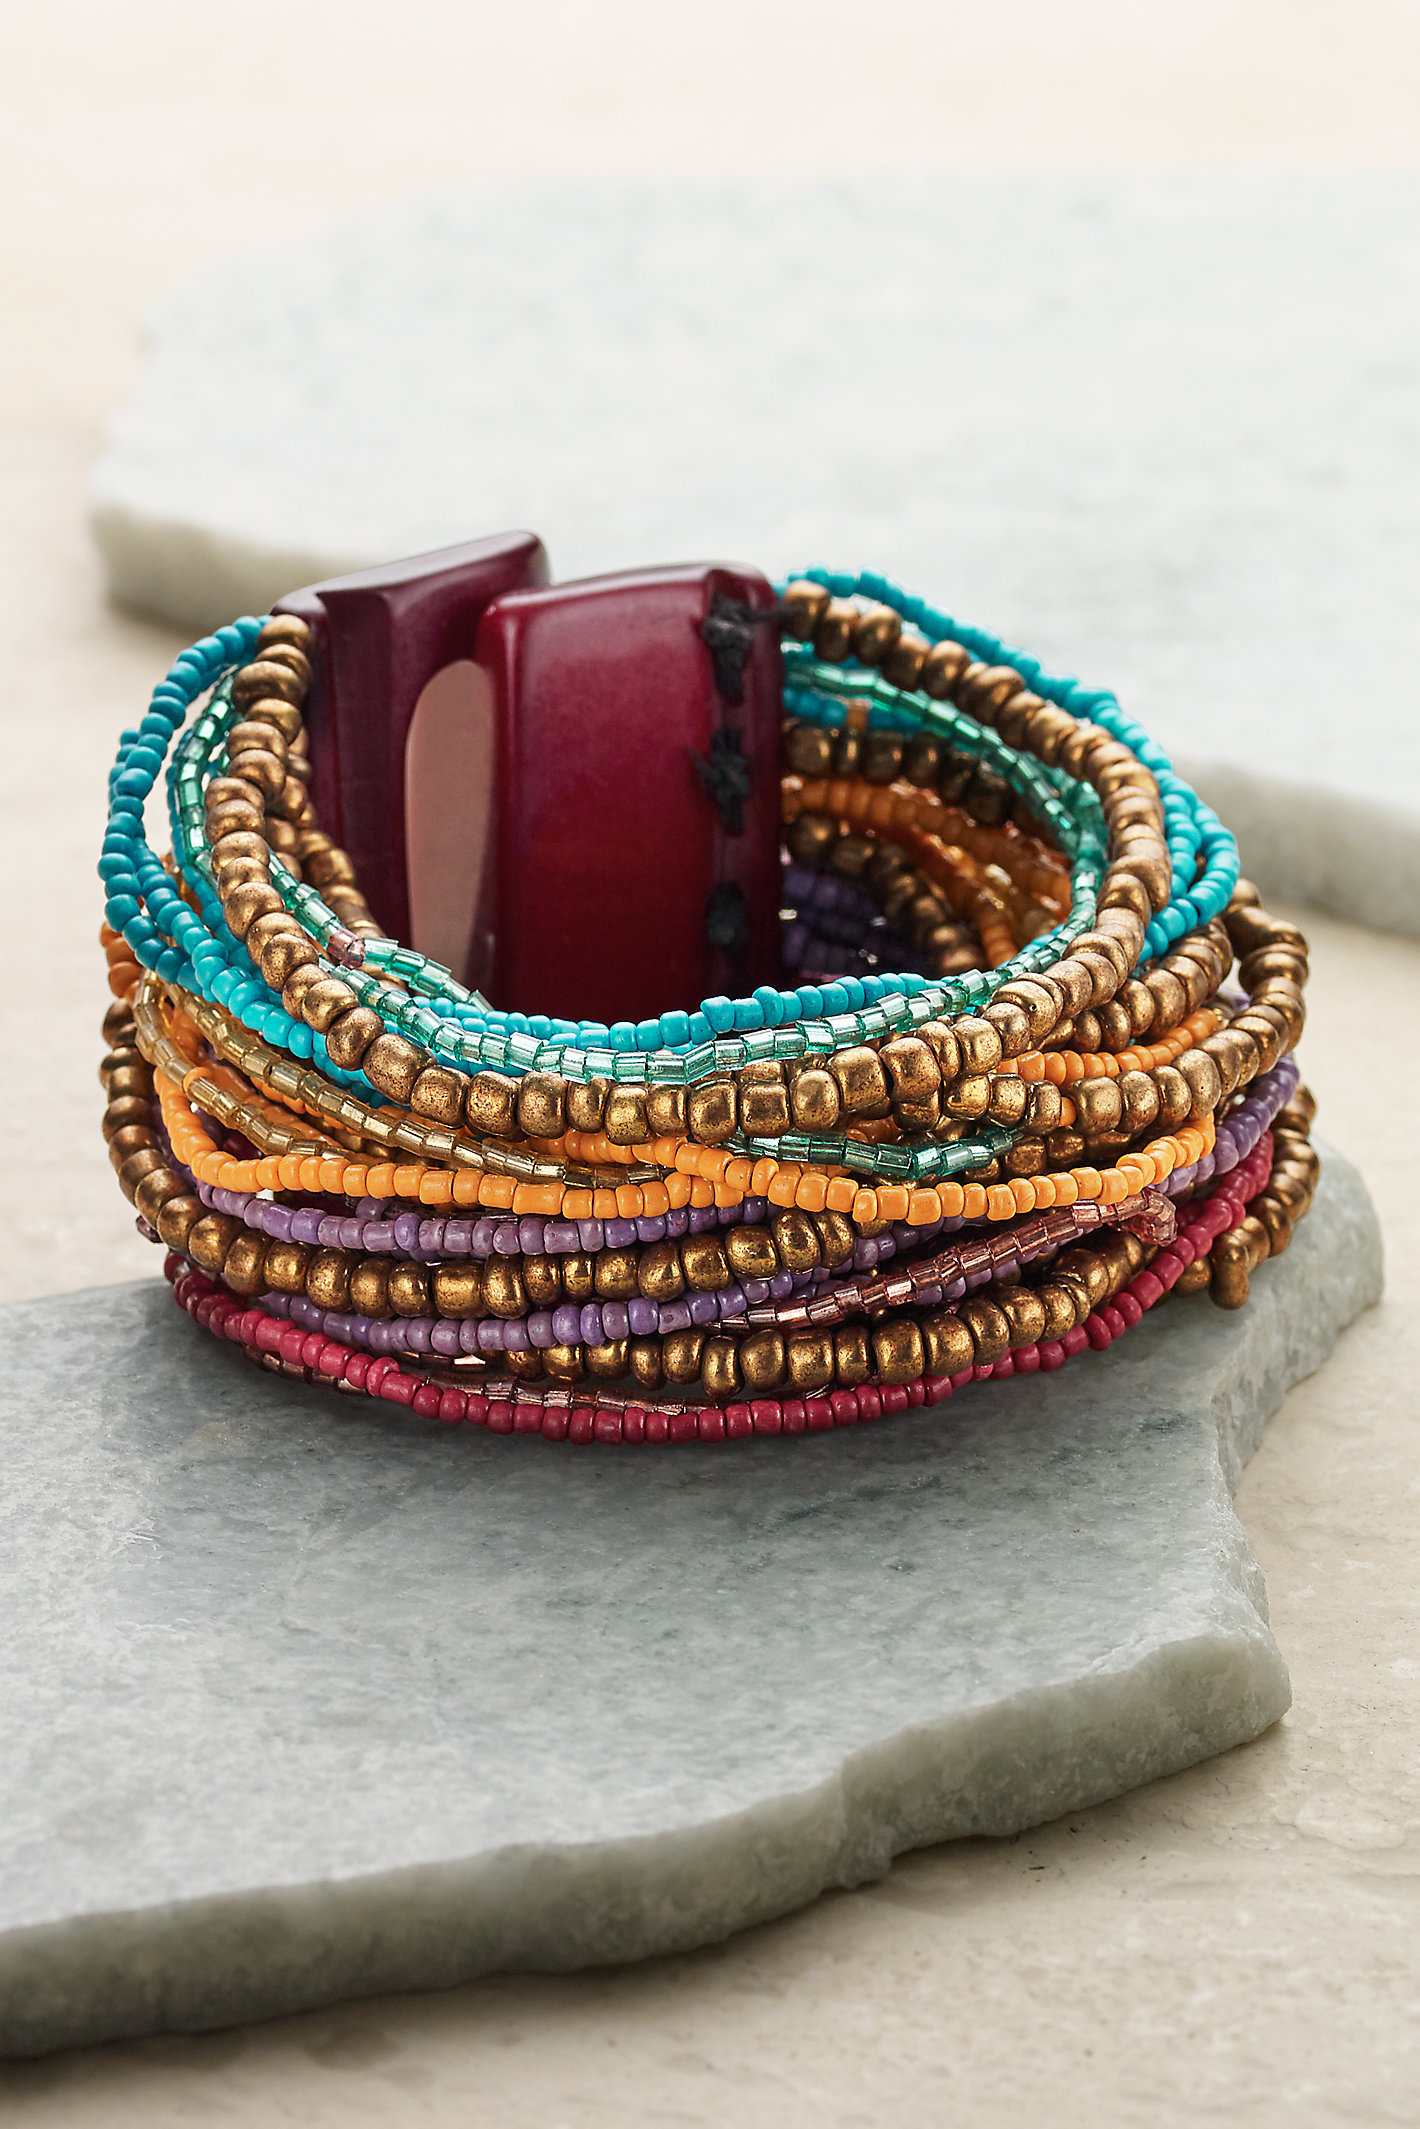 LAYERS OF COLORS BRACELET